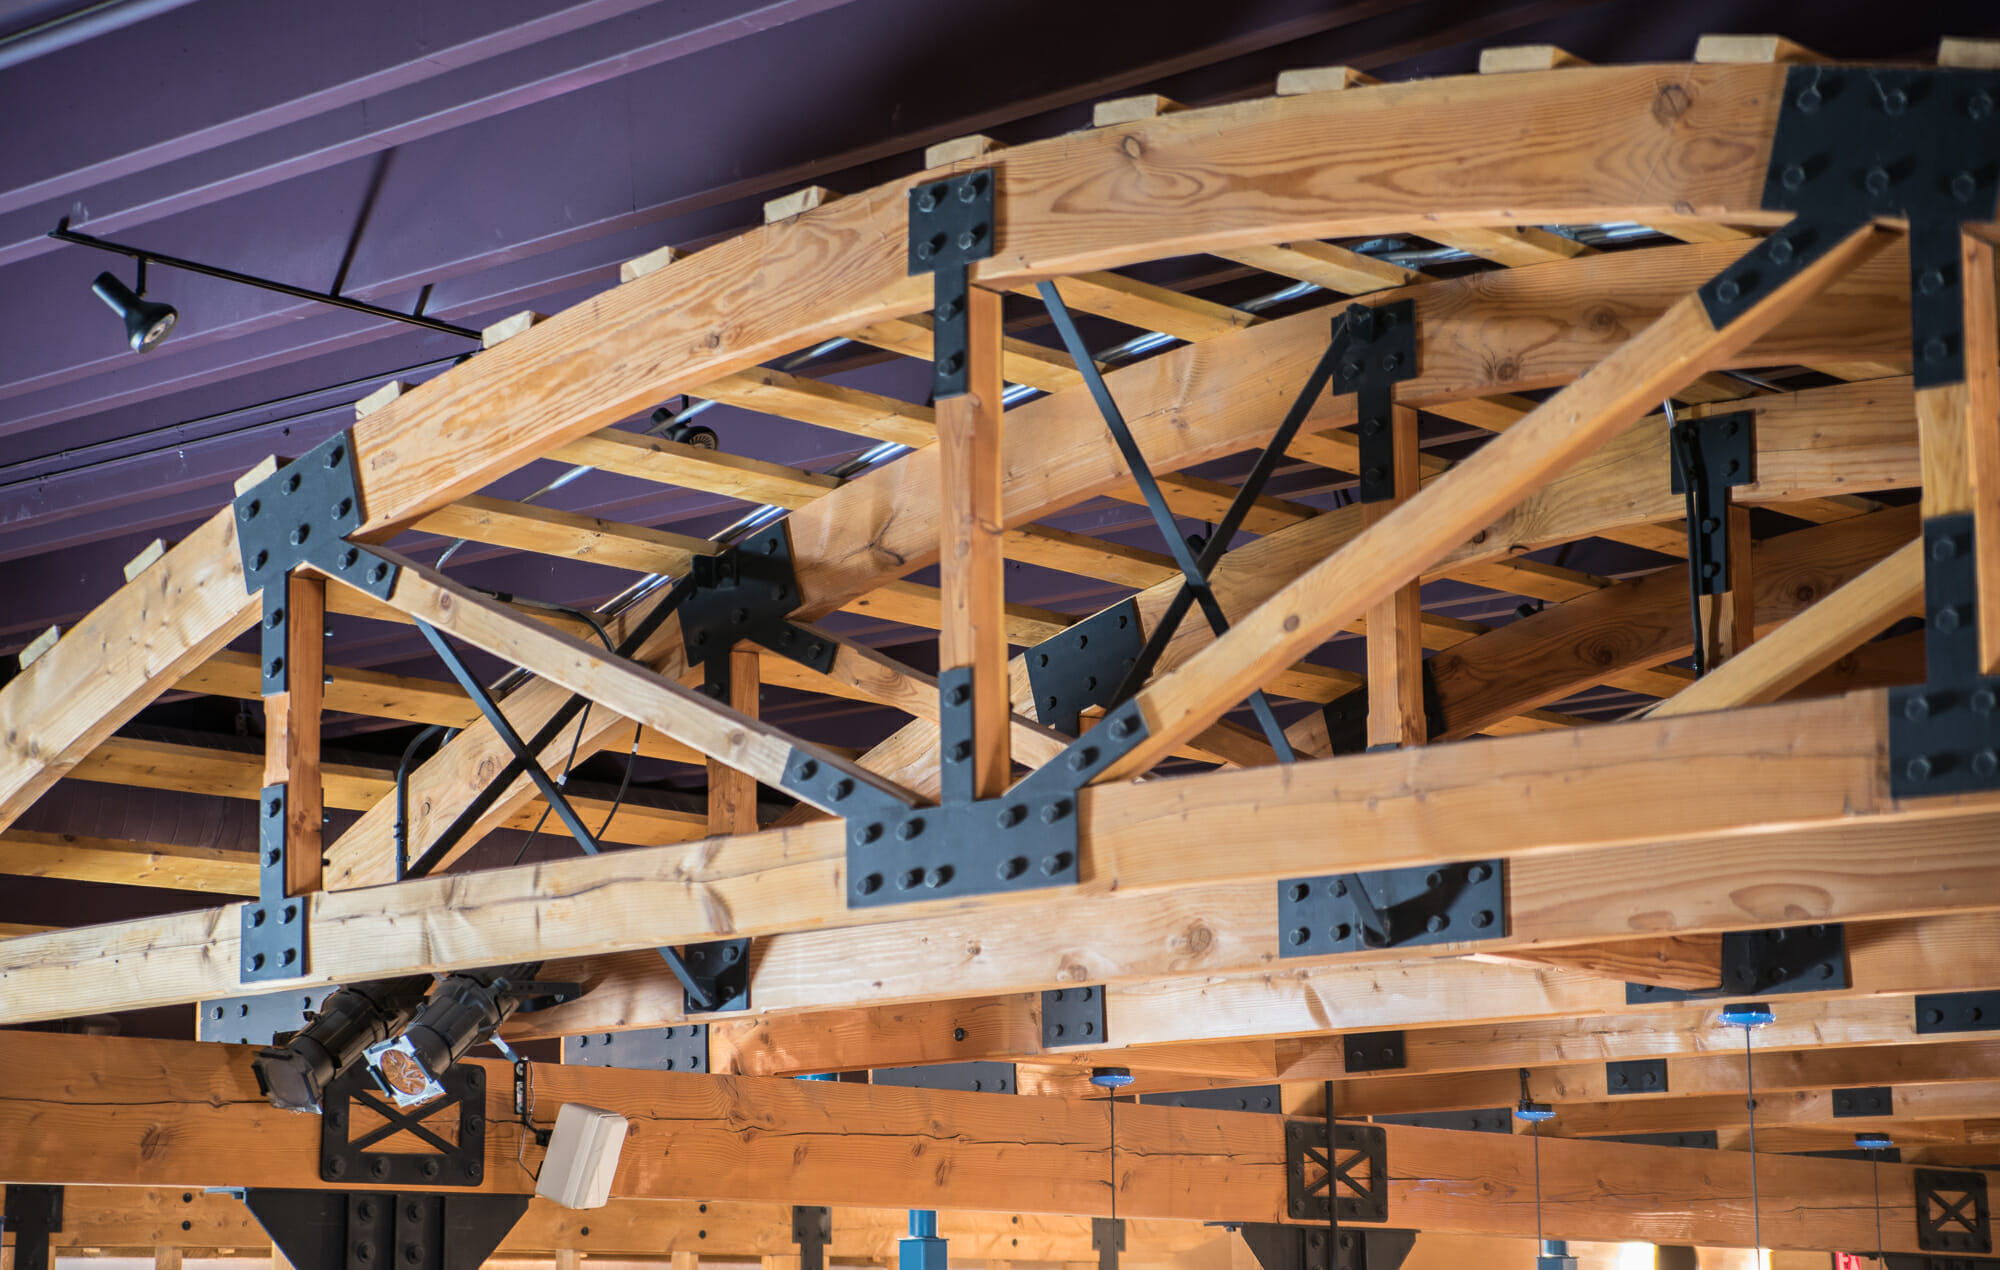 Steel connections for timber frames gusset plates